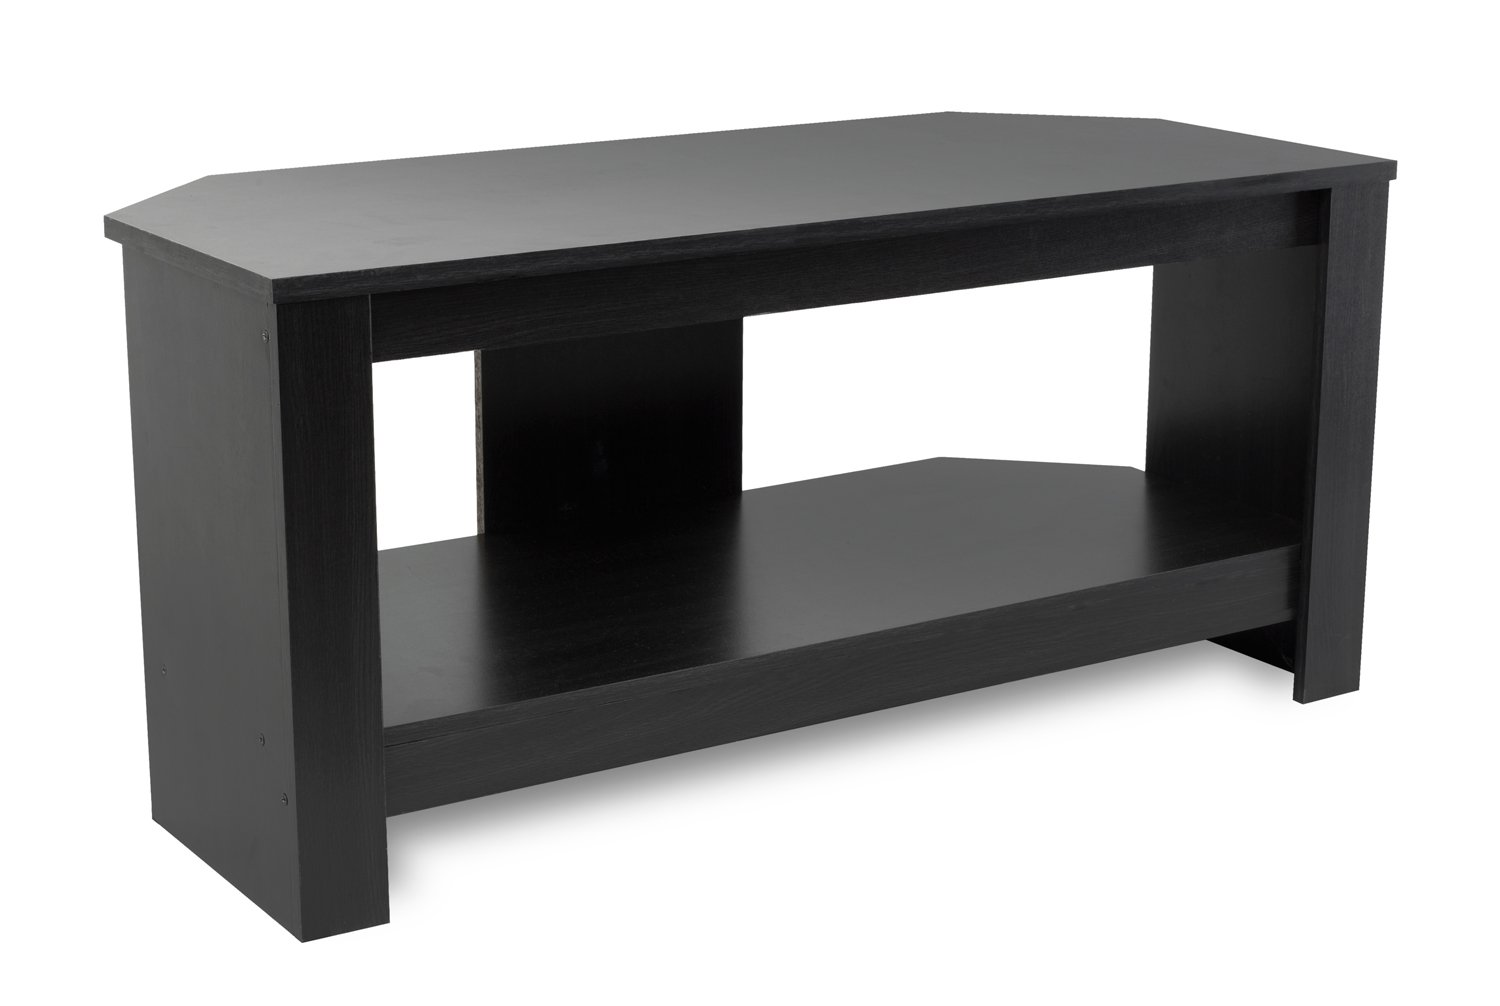 Mount-It Wood TV Stand and Storage Console for 32, 35, 37 Inch Flat Screen TVs, 35 Lbs Capacity, Black